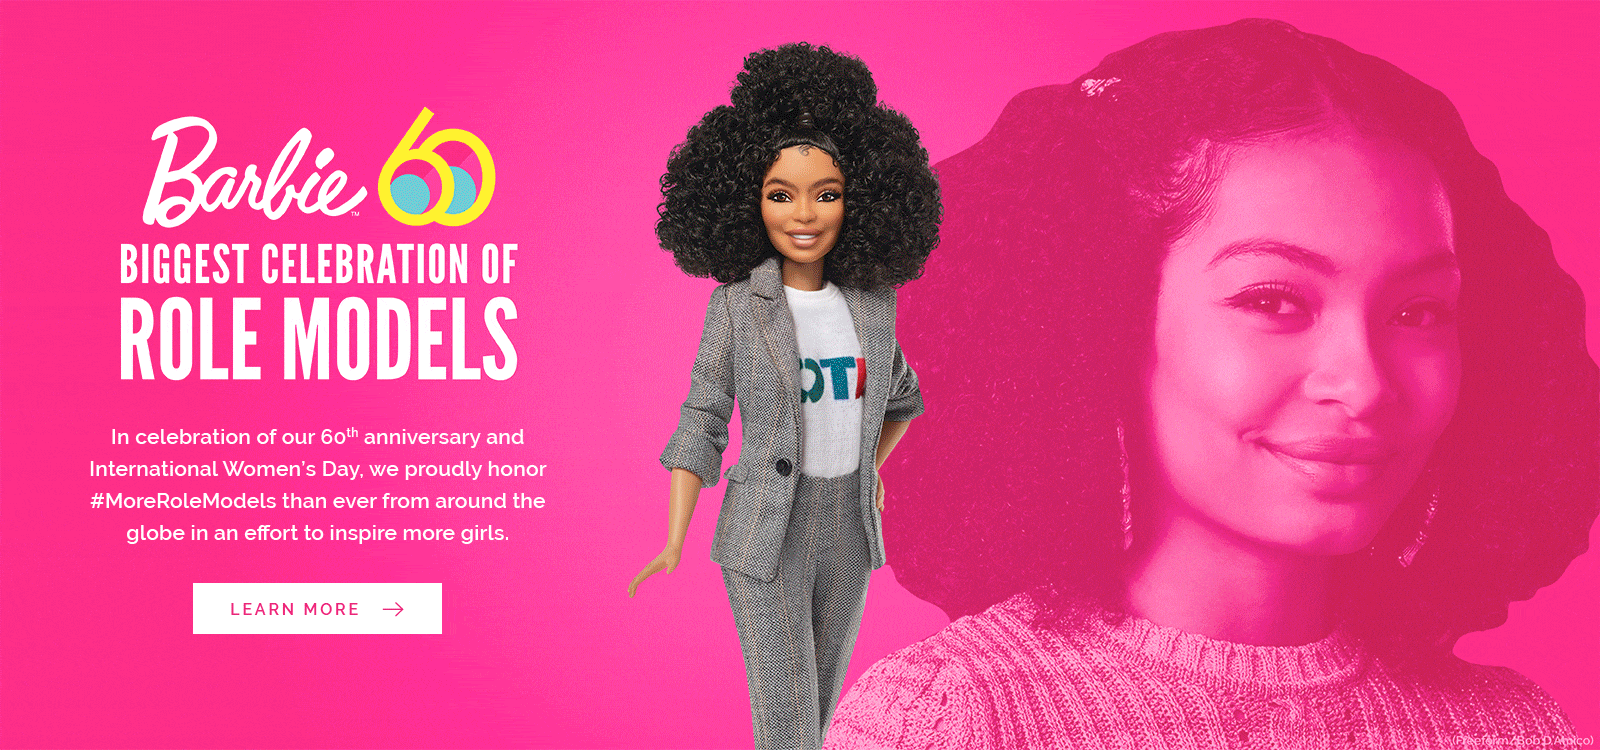 Barbie 60th - Biggest Celebration of Role Models